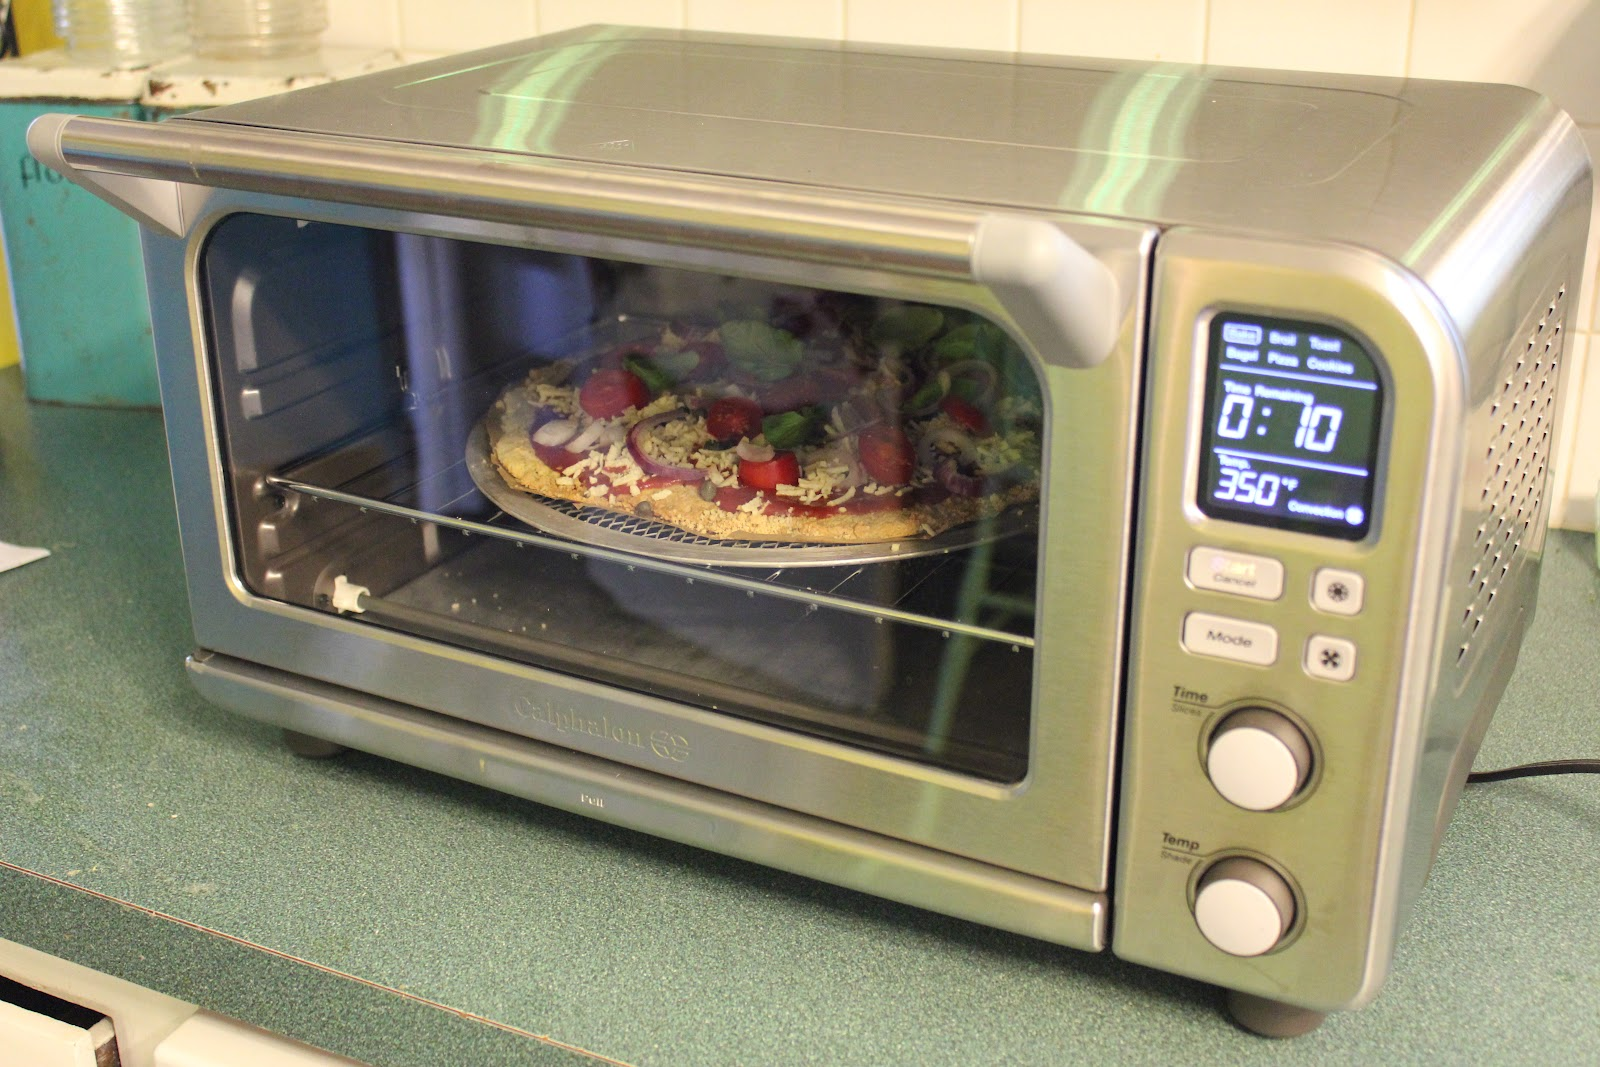 info units dynamicyoga true steel hamilton beach amazoncom samsung oven for slice you stainless best convection graded cu calphalon ft toaster